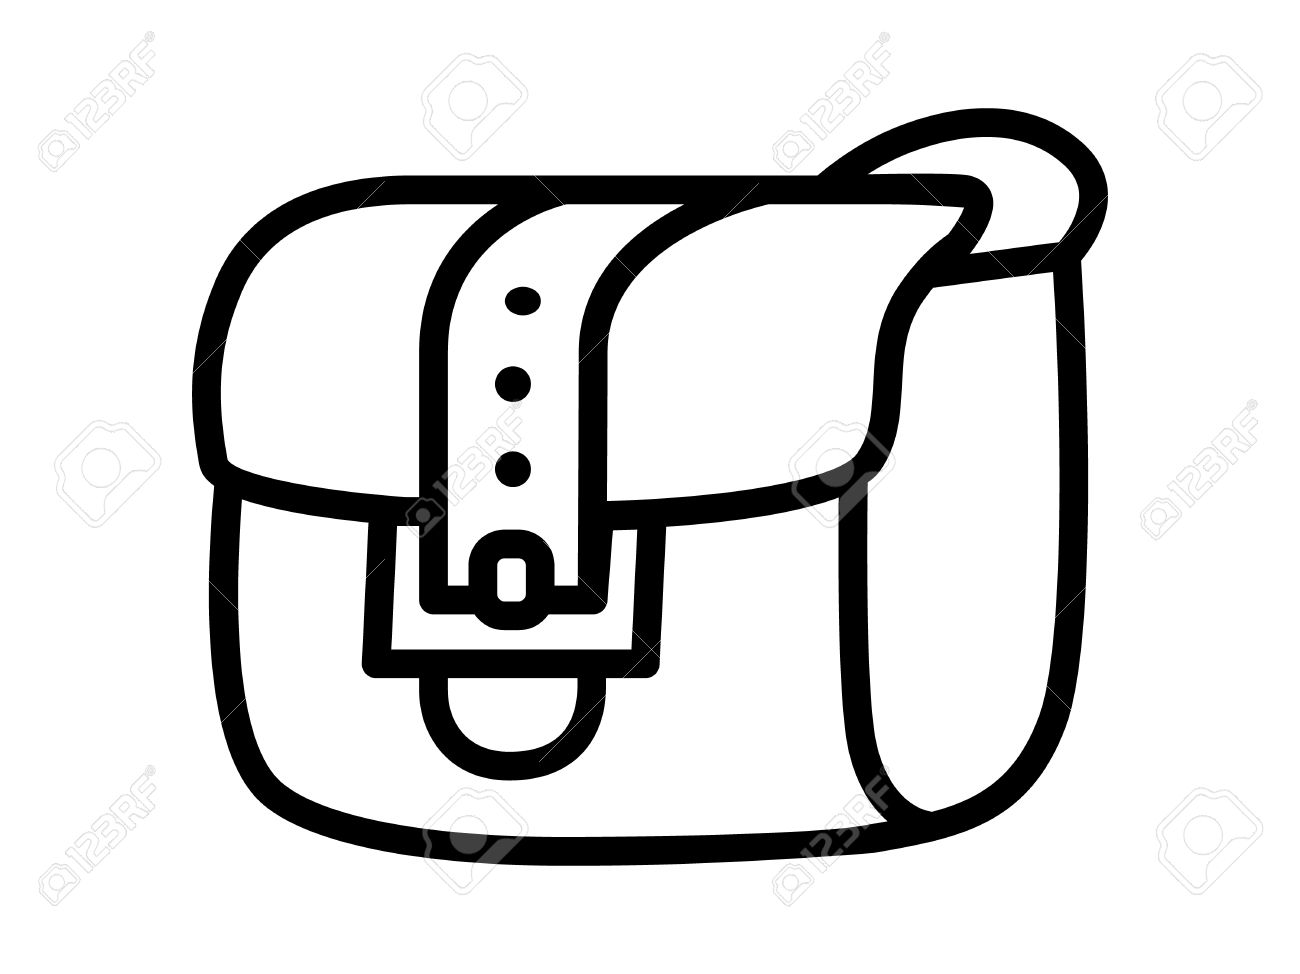 Satchel inventory messenger bag line art icon for apps and websites.